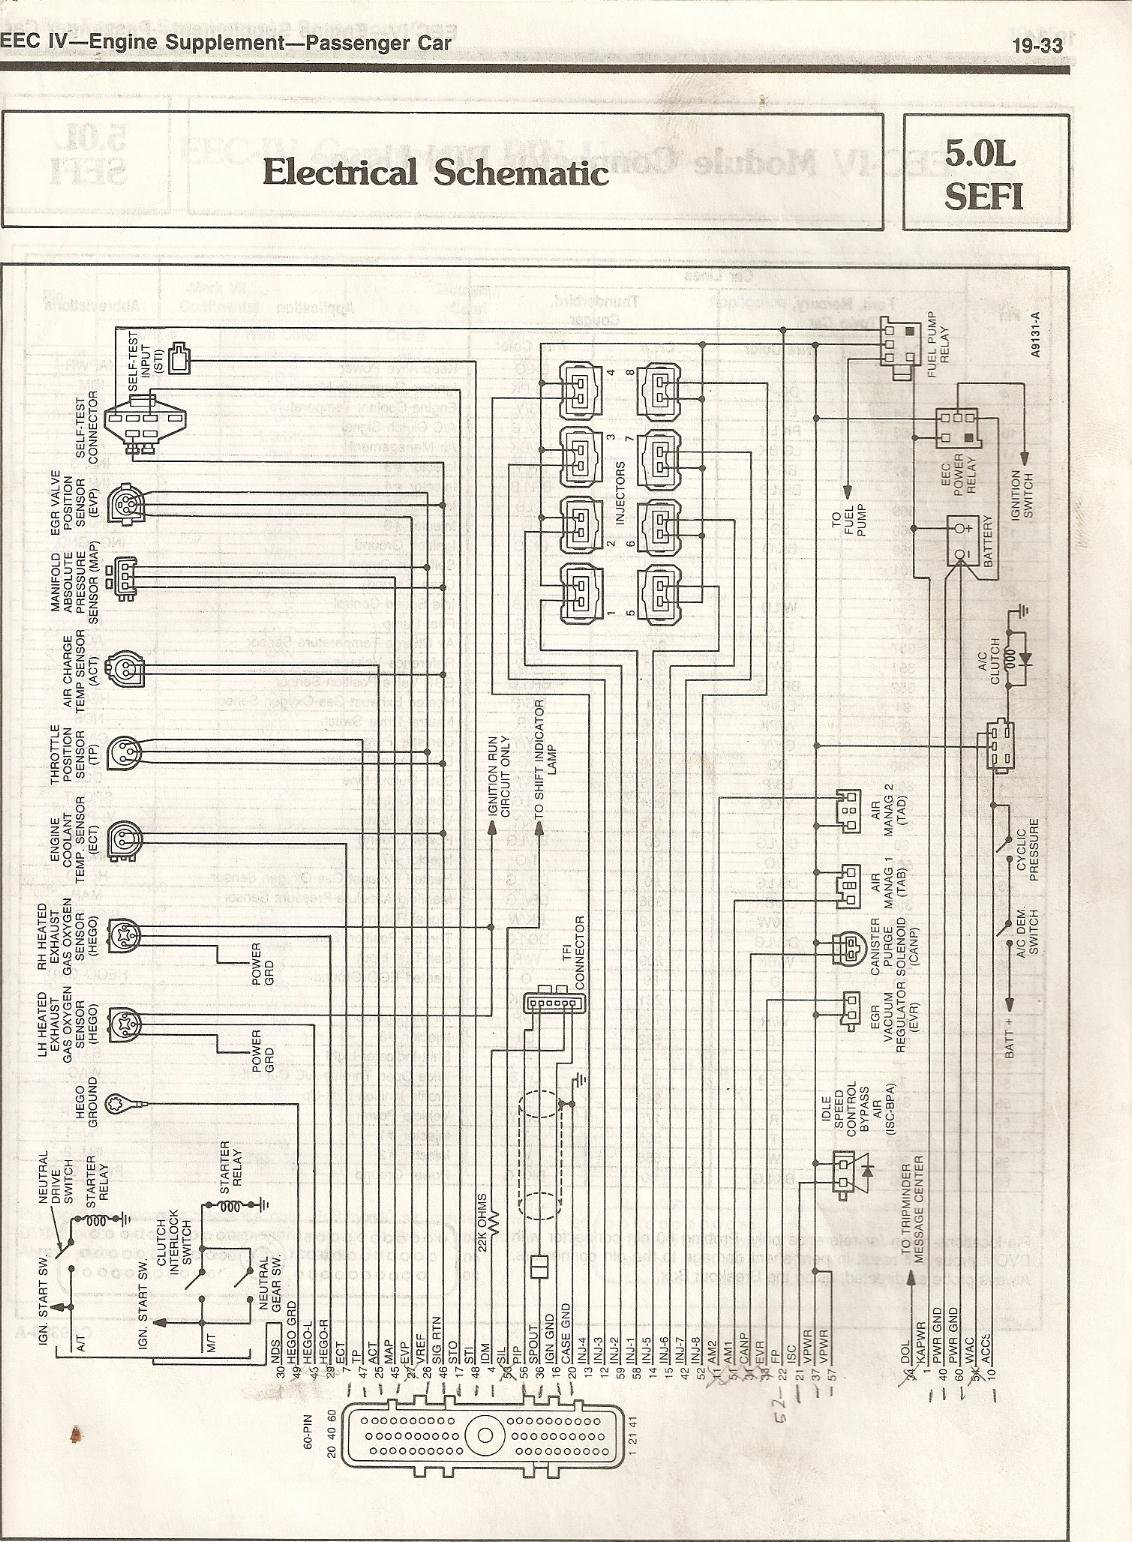 495529d1454445979 302 5 0 efi swap computer pins 1986 5.0 eec pinout eec iv wiring diagram eec iv bracket \u2022 free wiring diagrams life 1989 F250 Wiring Diagram at reclaimingppi.co